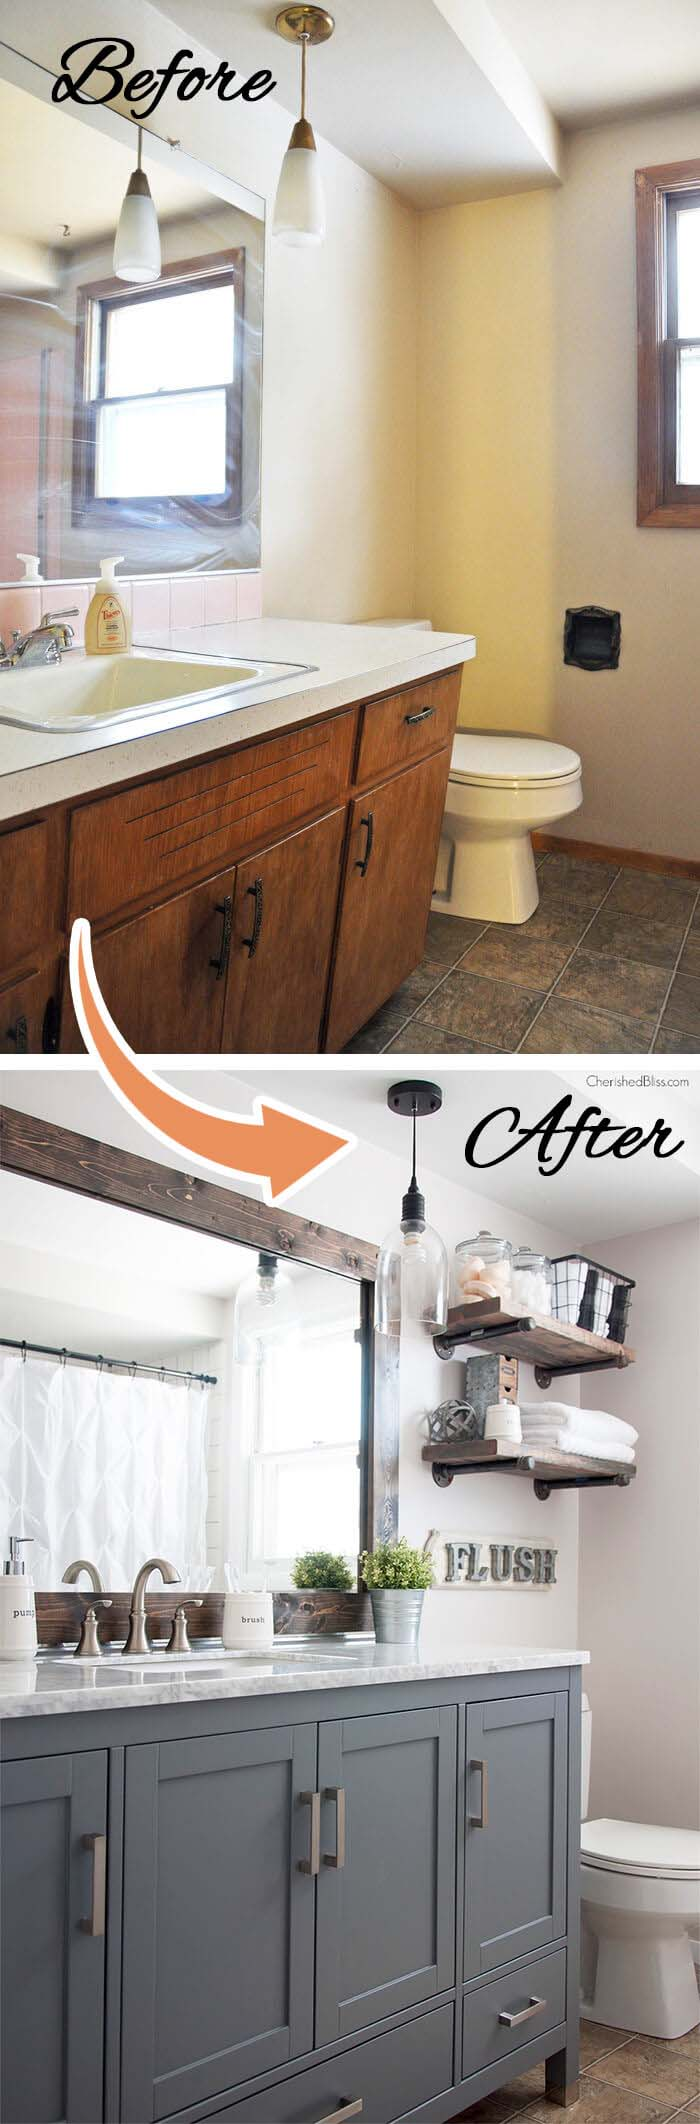 Before and After Total Transformation #bathroom #makeover #decorhomeideas